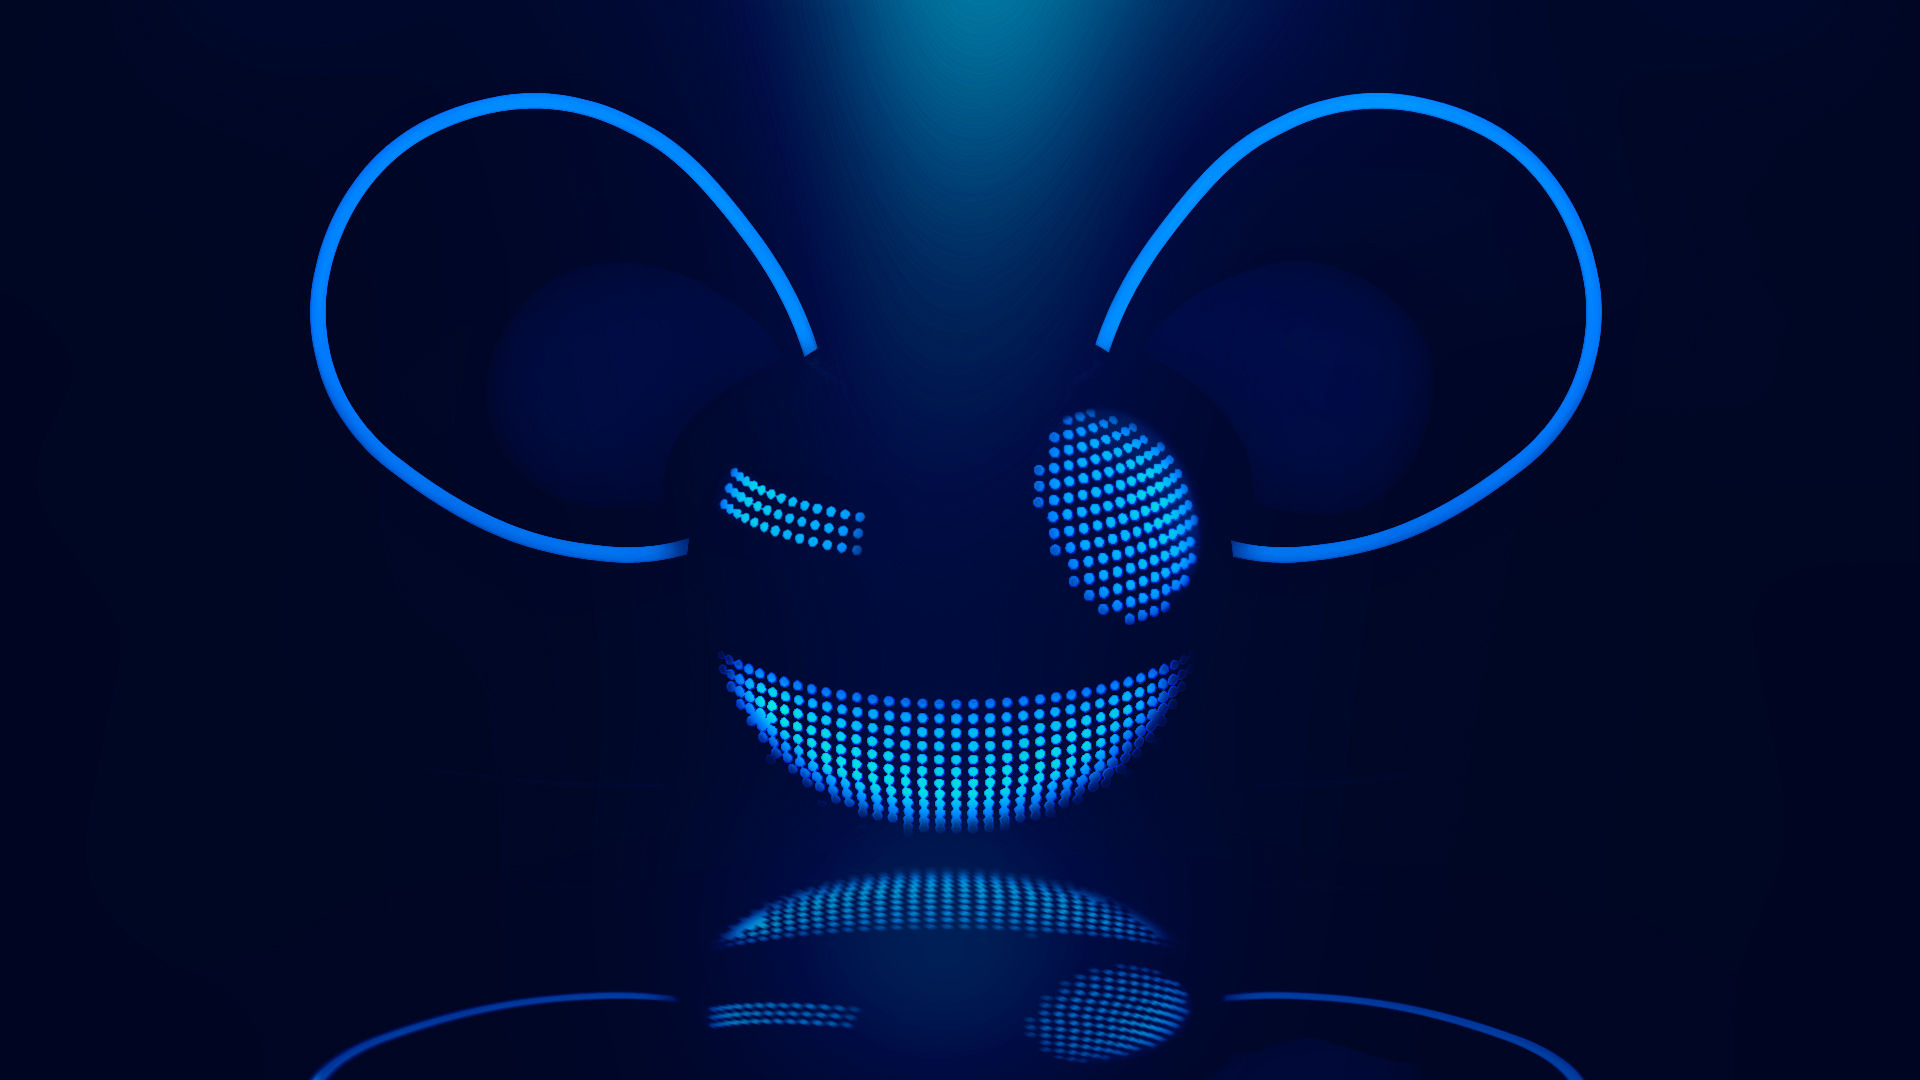 deadmau5-wallpaper.jpg